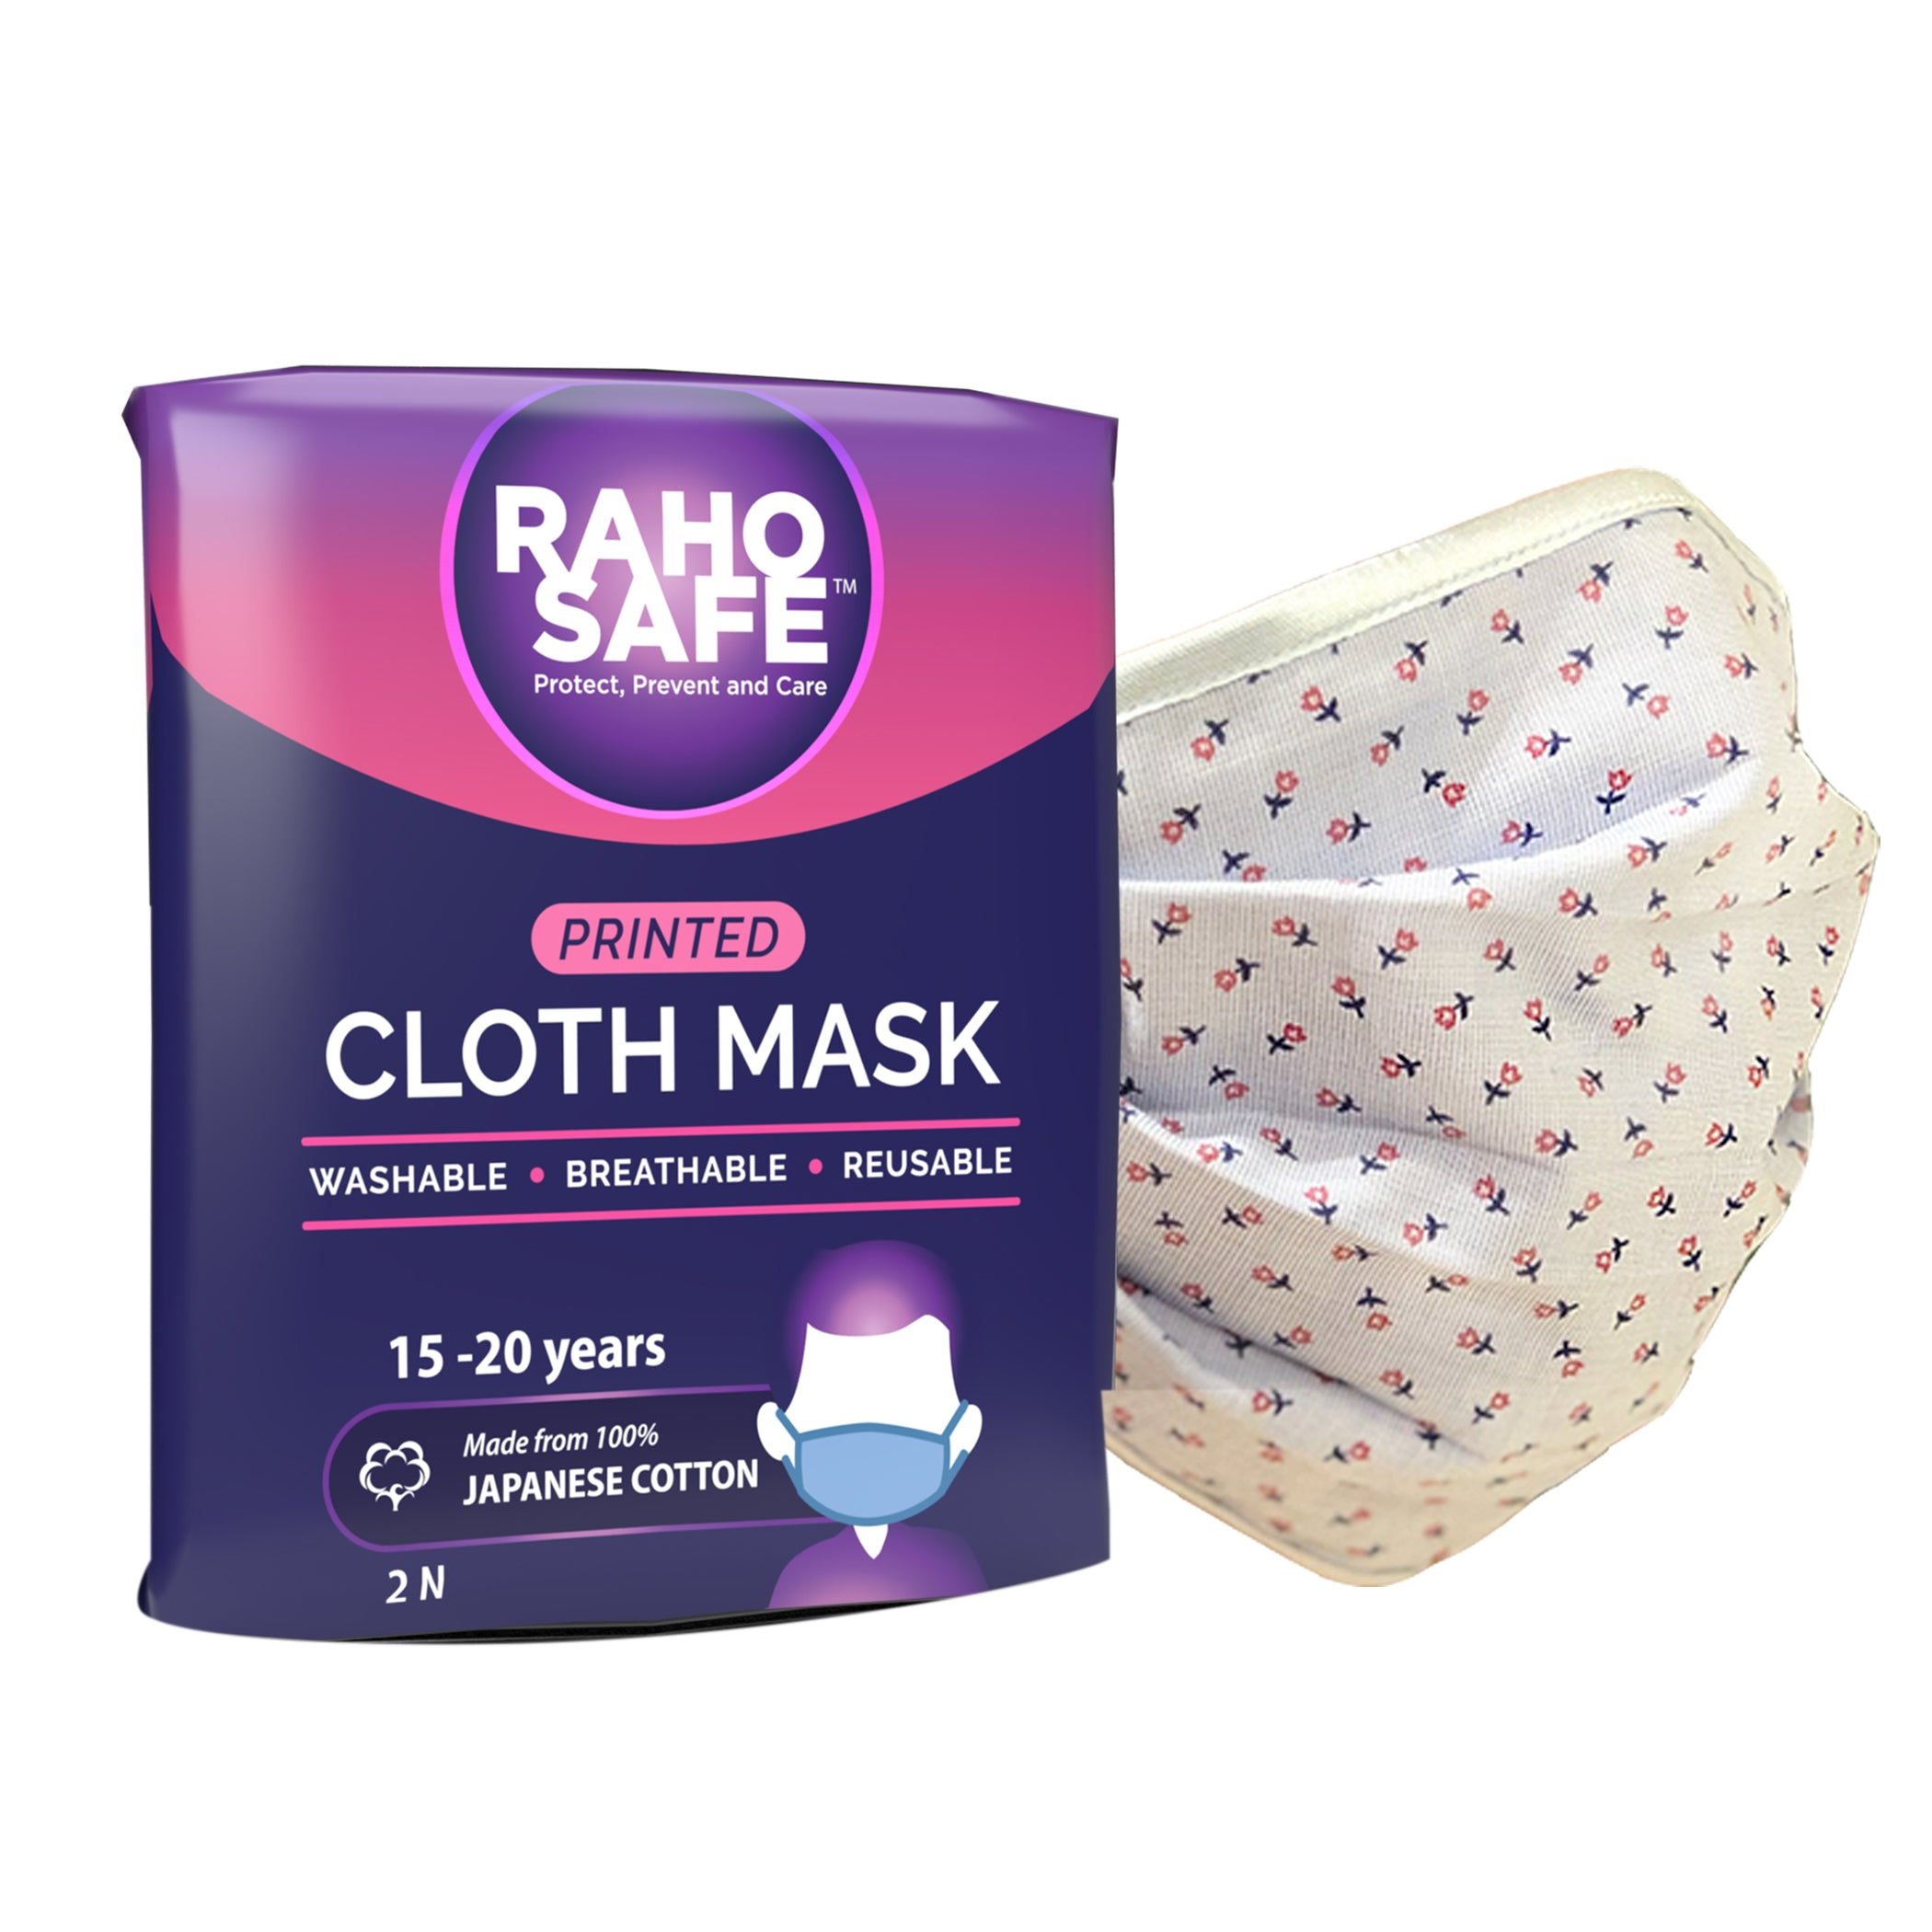 Printed Cloth Mask (Pack of 2) - Large